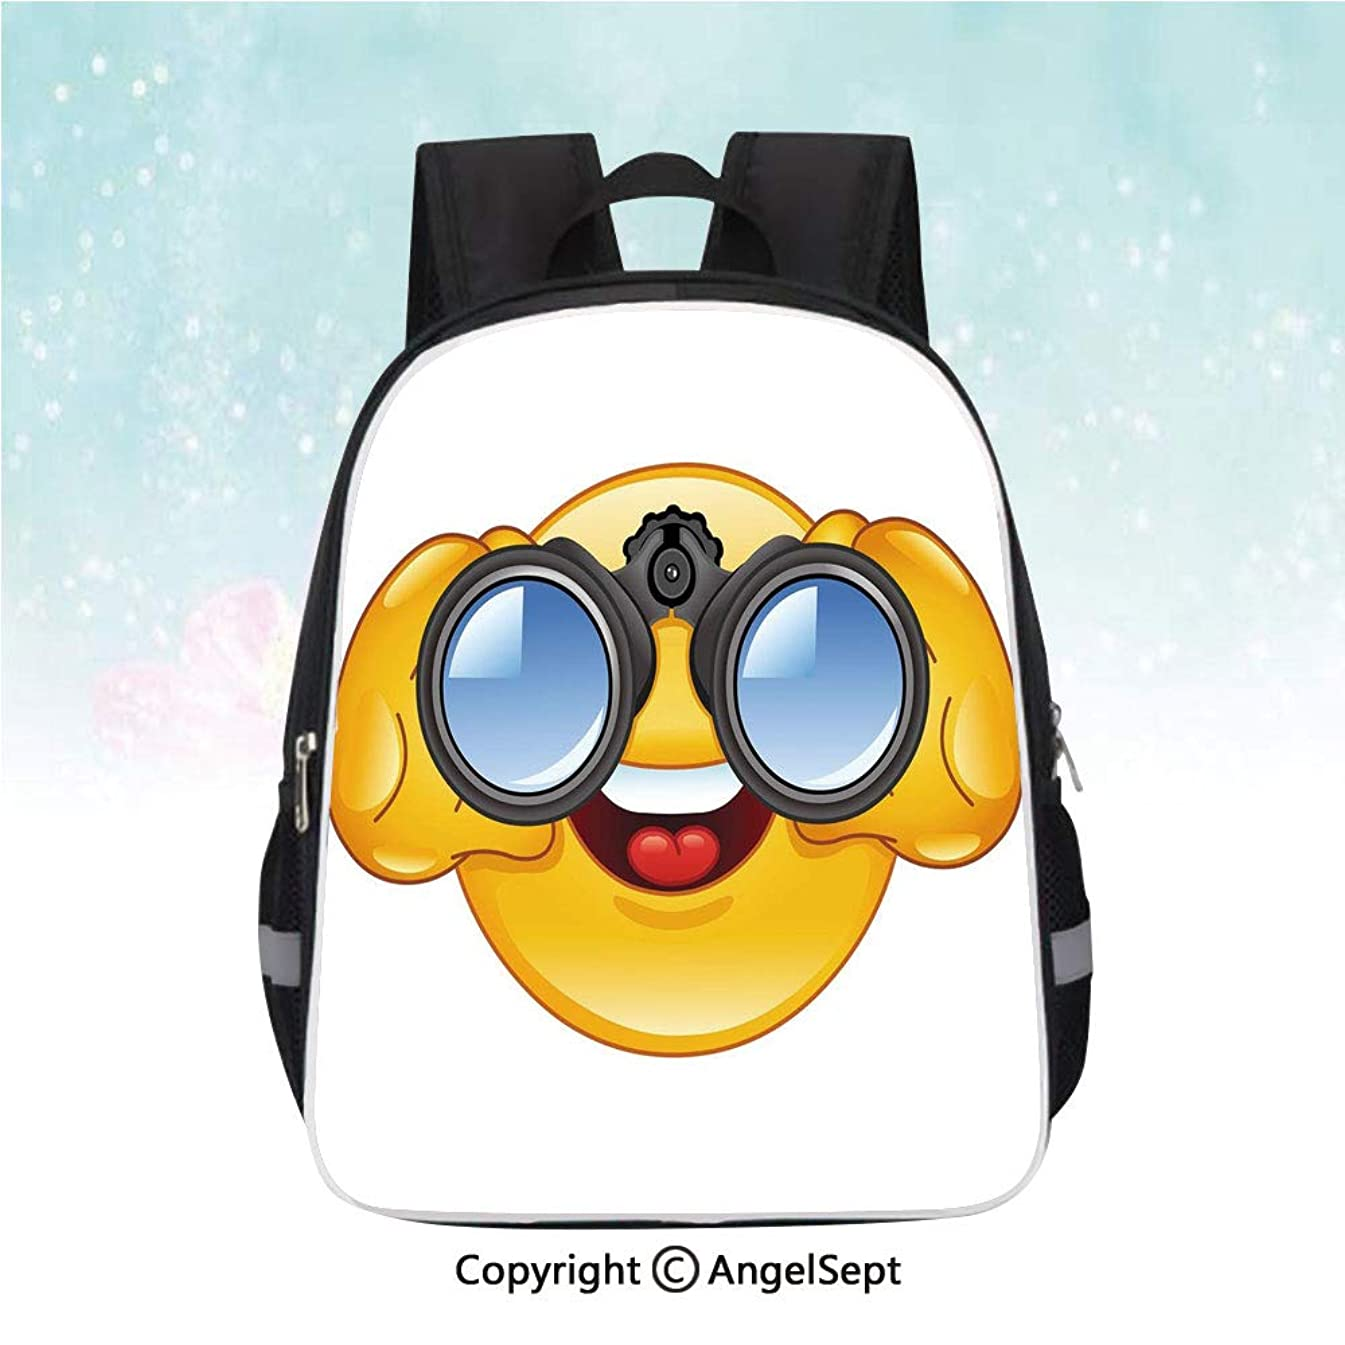 Nylon Fabric Backpack,Smiley Face with a Telescope Binoculars Glasses Watching Outside Cartoon Print,13